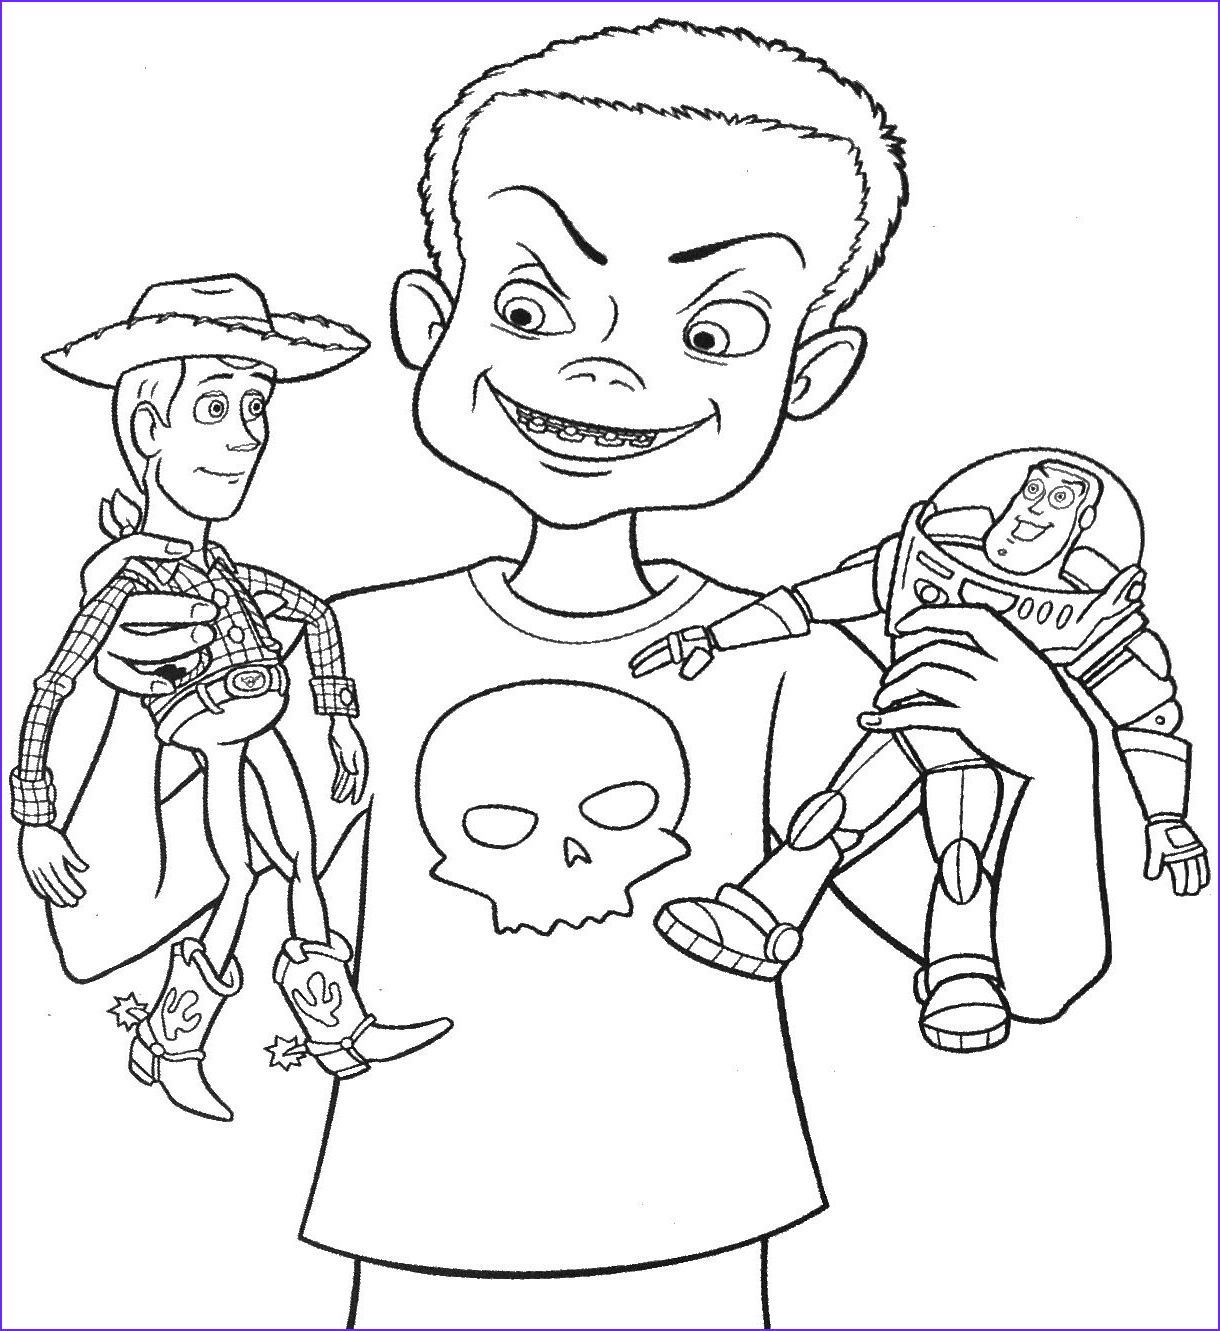 Toy Story Coloring Page Best Of Collection toy Story Coloring Pages Google Søgning